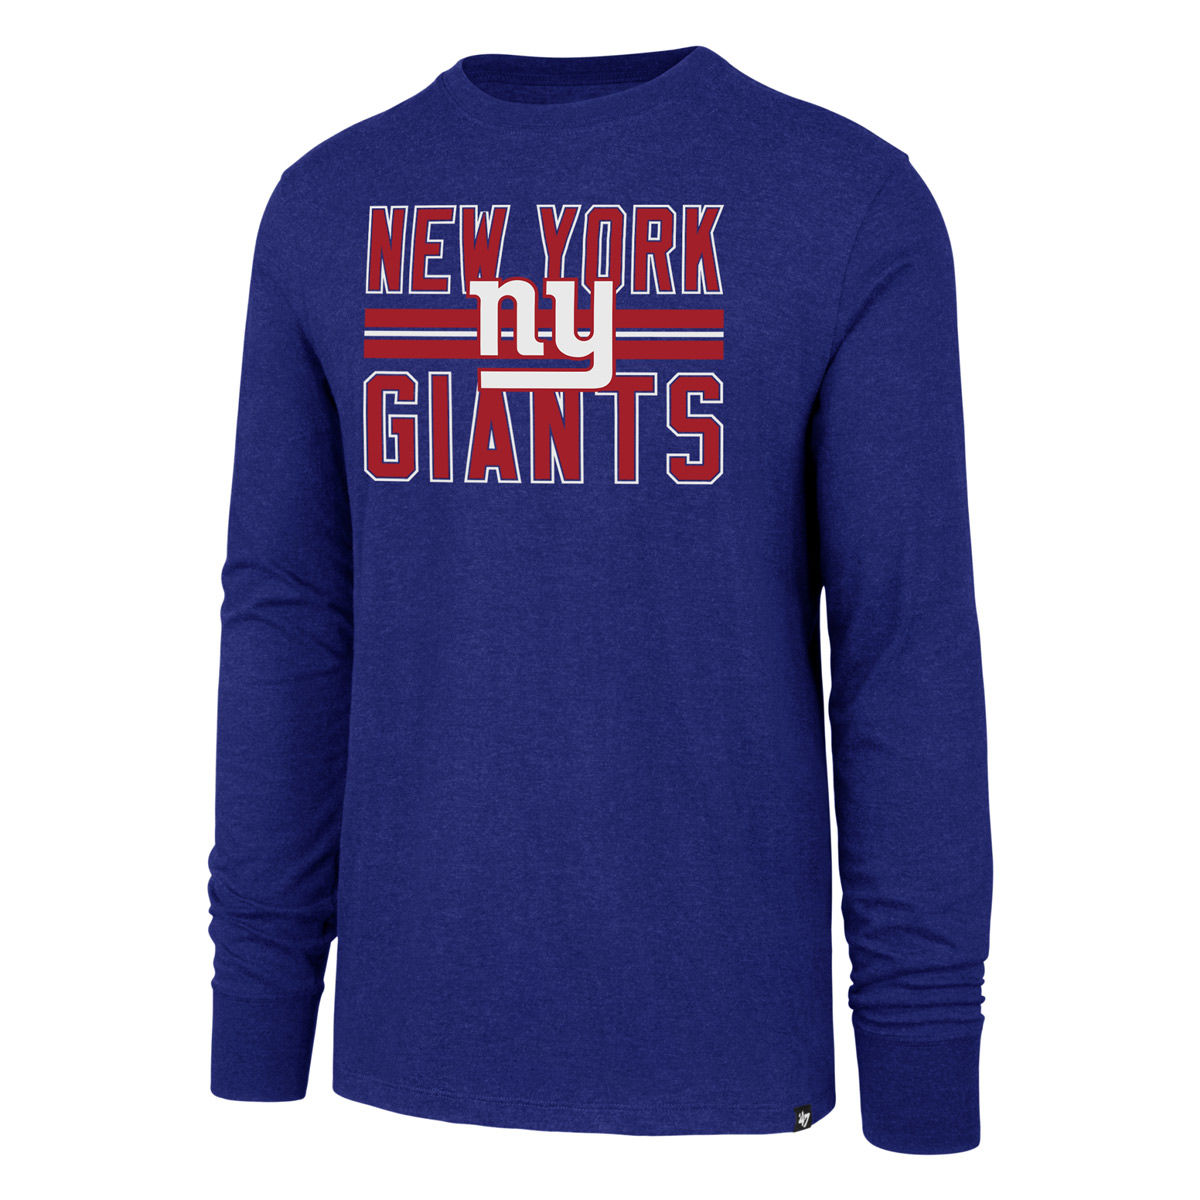 New York Giants Adult Long Sleeve T-Shirt